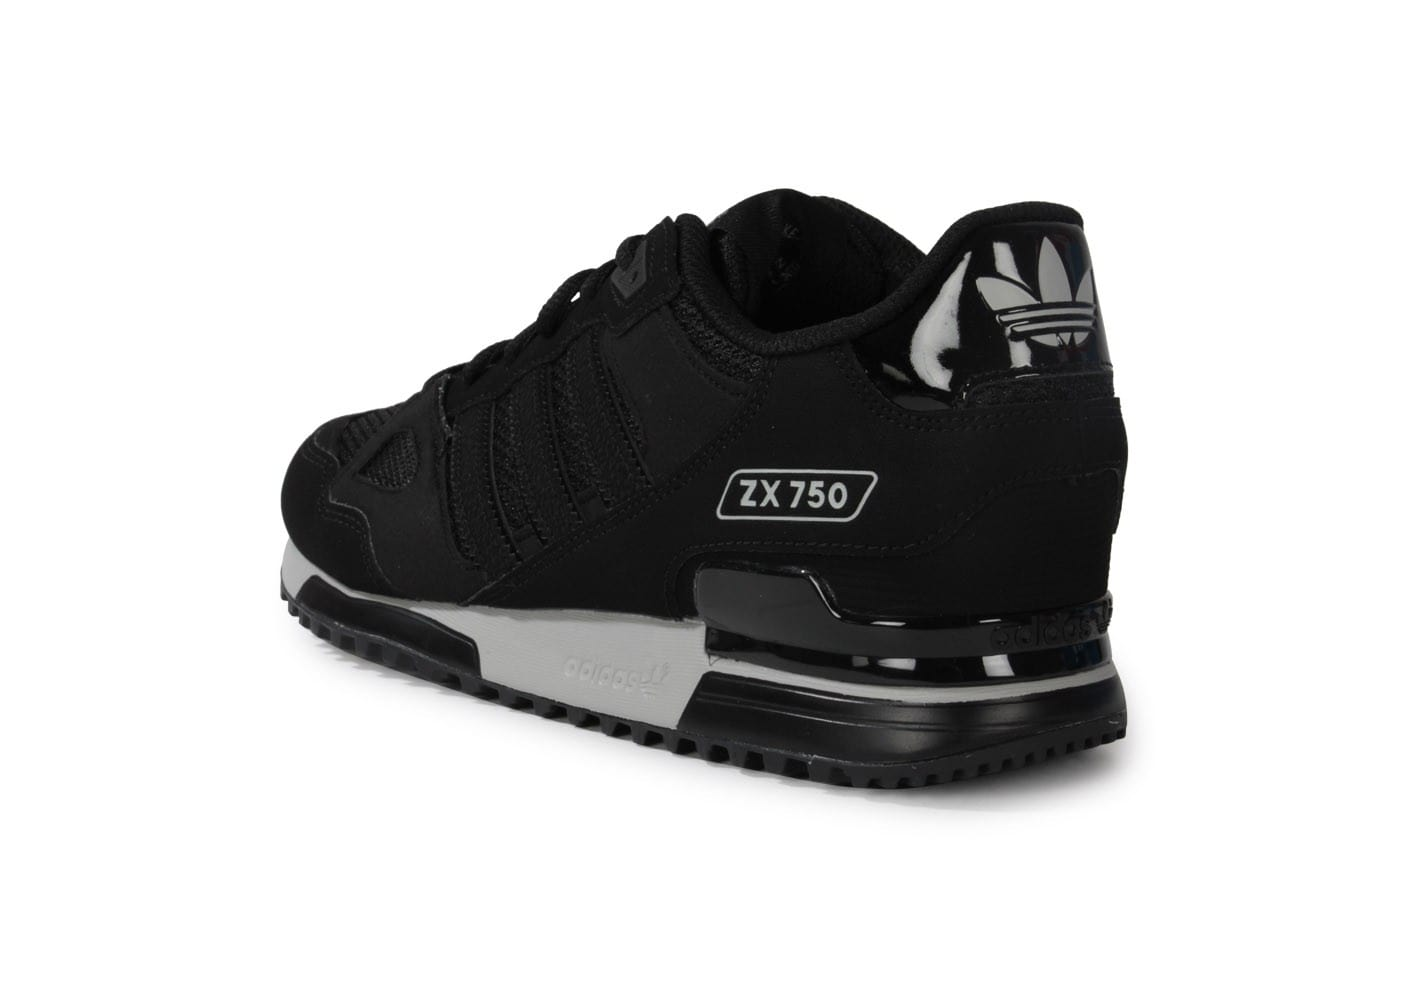 taille 40 c60ae e5971 Zx Adidas 2015 Adidas Zx Adidas Chaussure Homme Homme ...